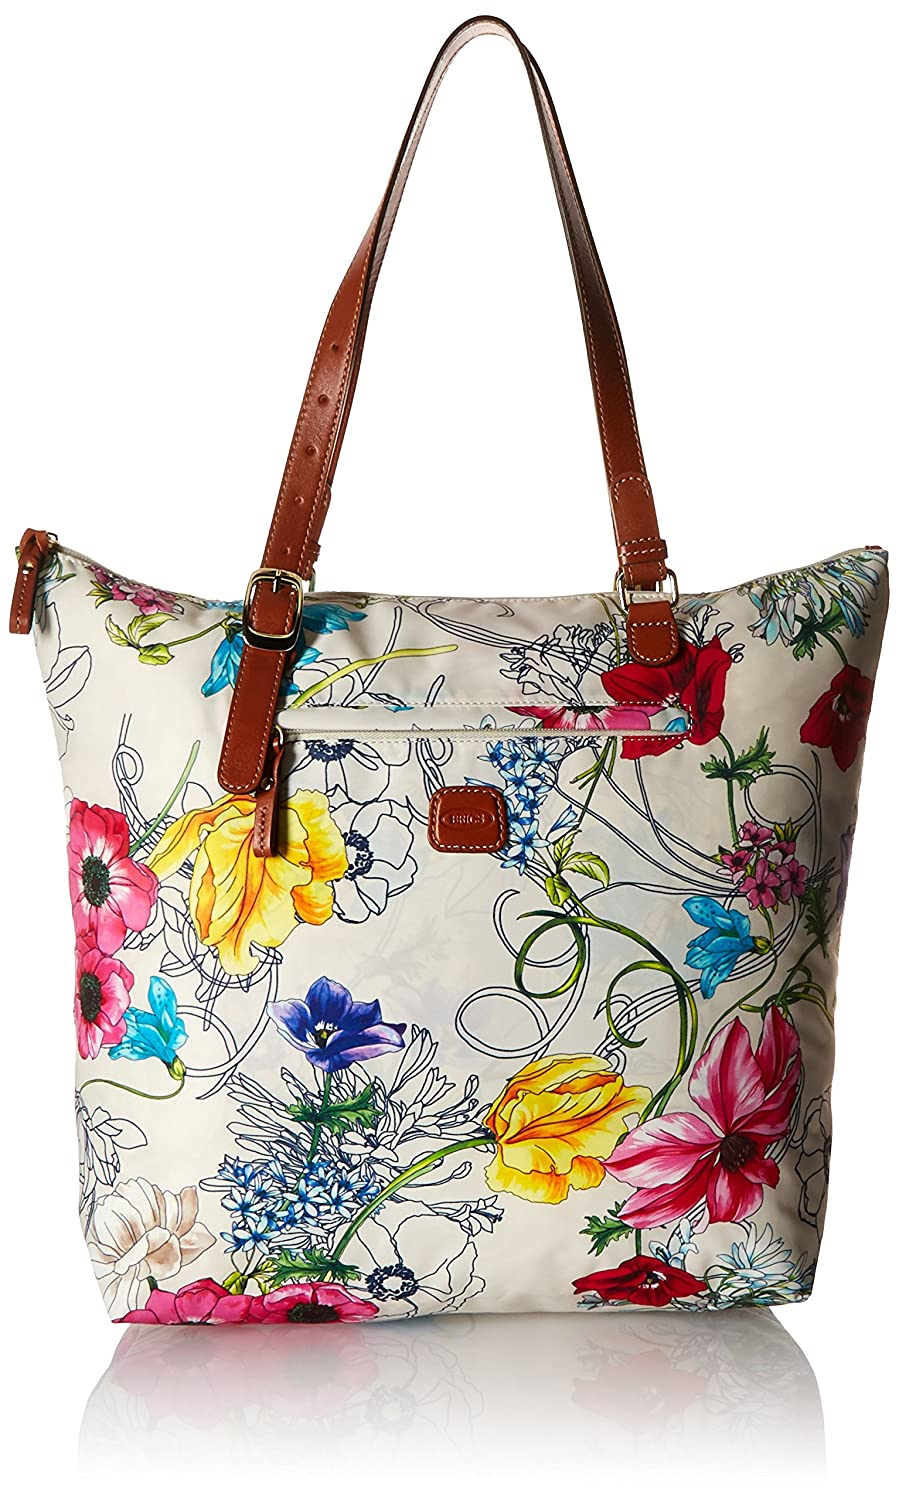 f7293ee2668 Bric's X-Bag Large Sportina Shopper Travel Totes, Floral